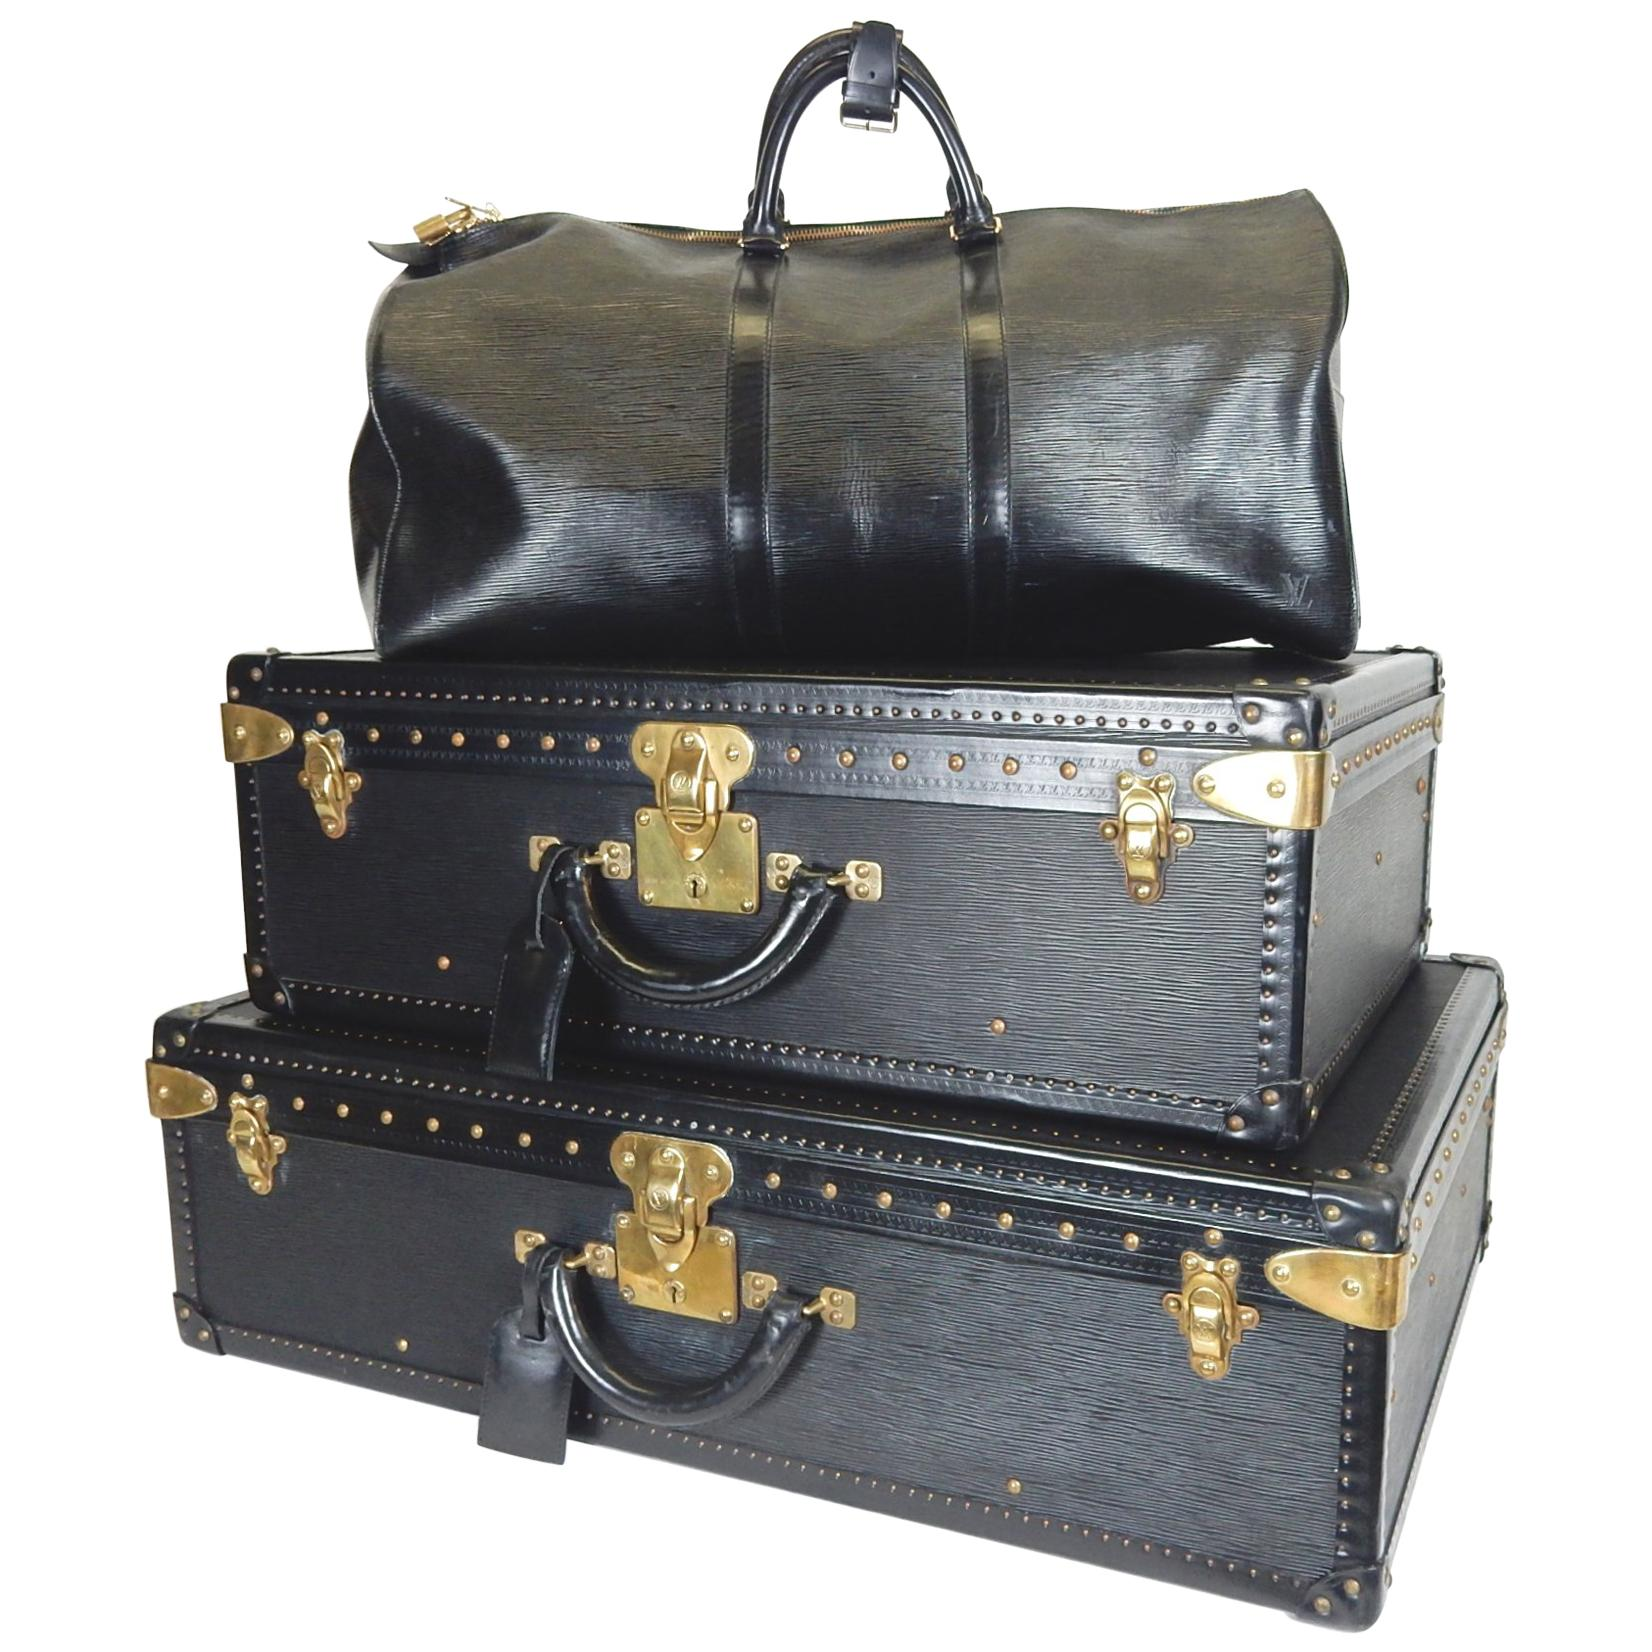 f0dd7ce92cd Louis Vuitton Trunks and Luggage - 218 For Sale at 1stdibs - Page 2